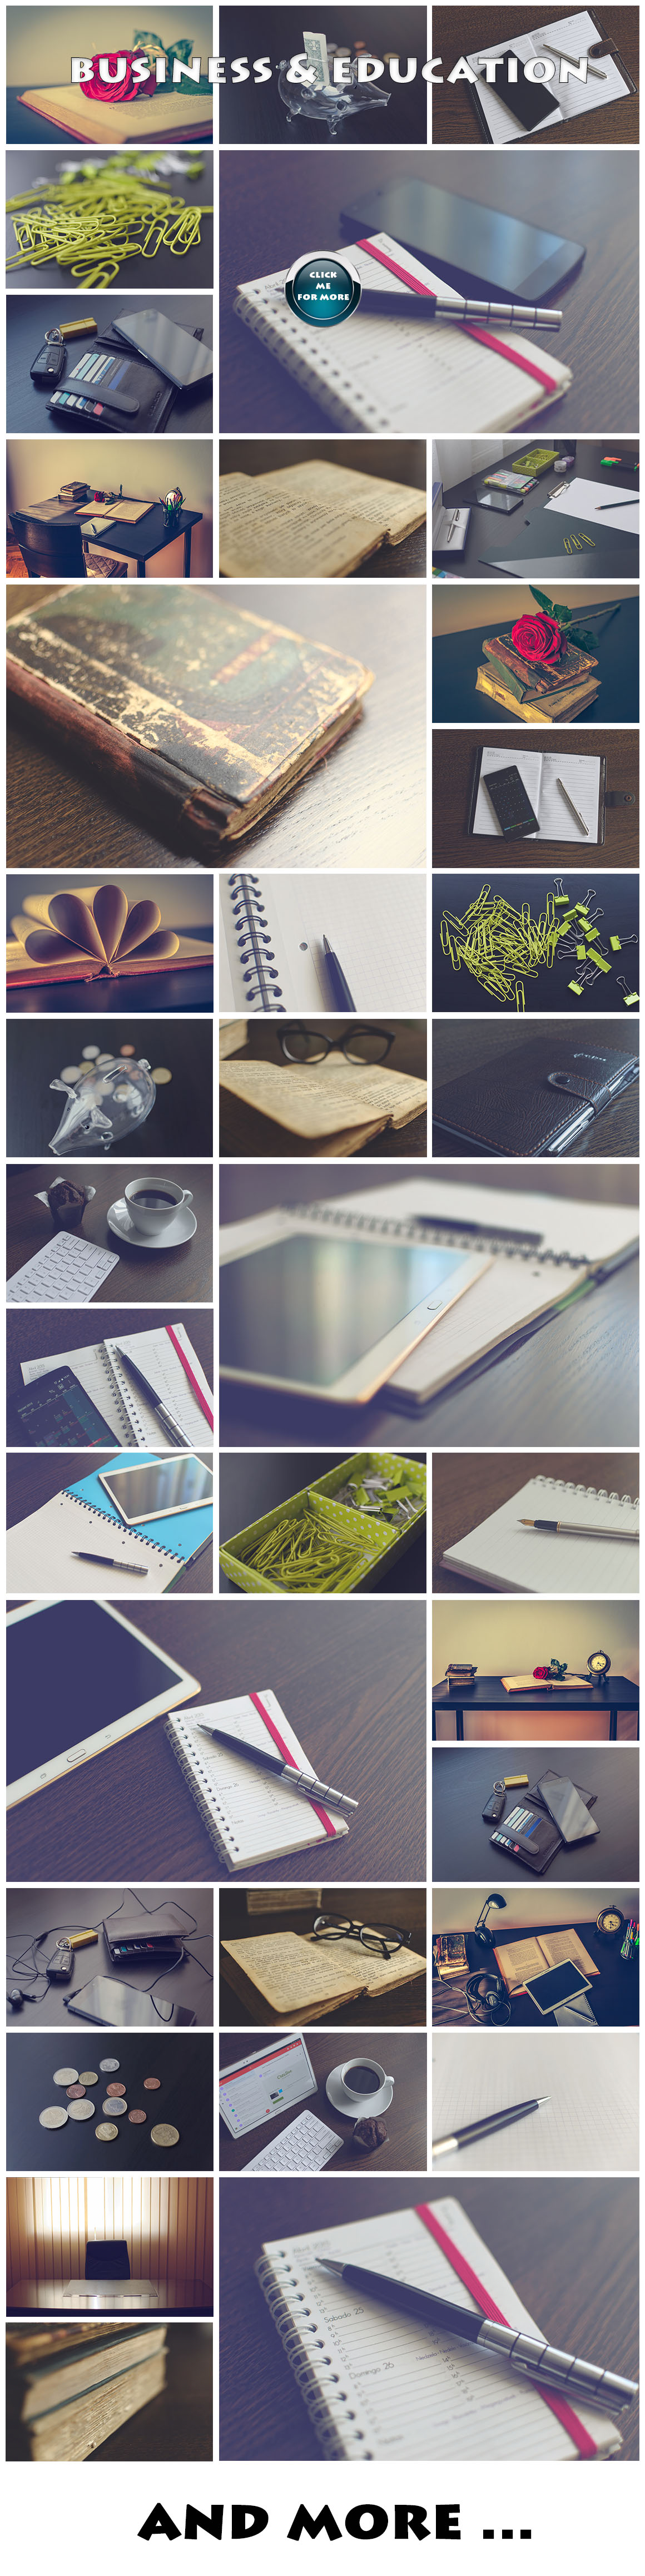 MAMMOTH PHOTO PACK by Histeryk Photo on Creative Market